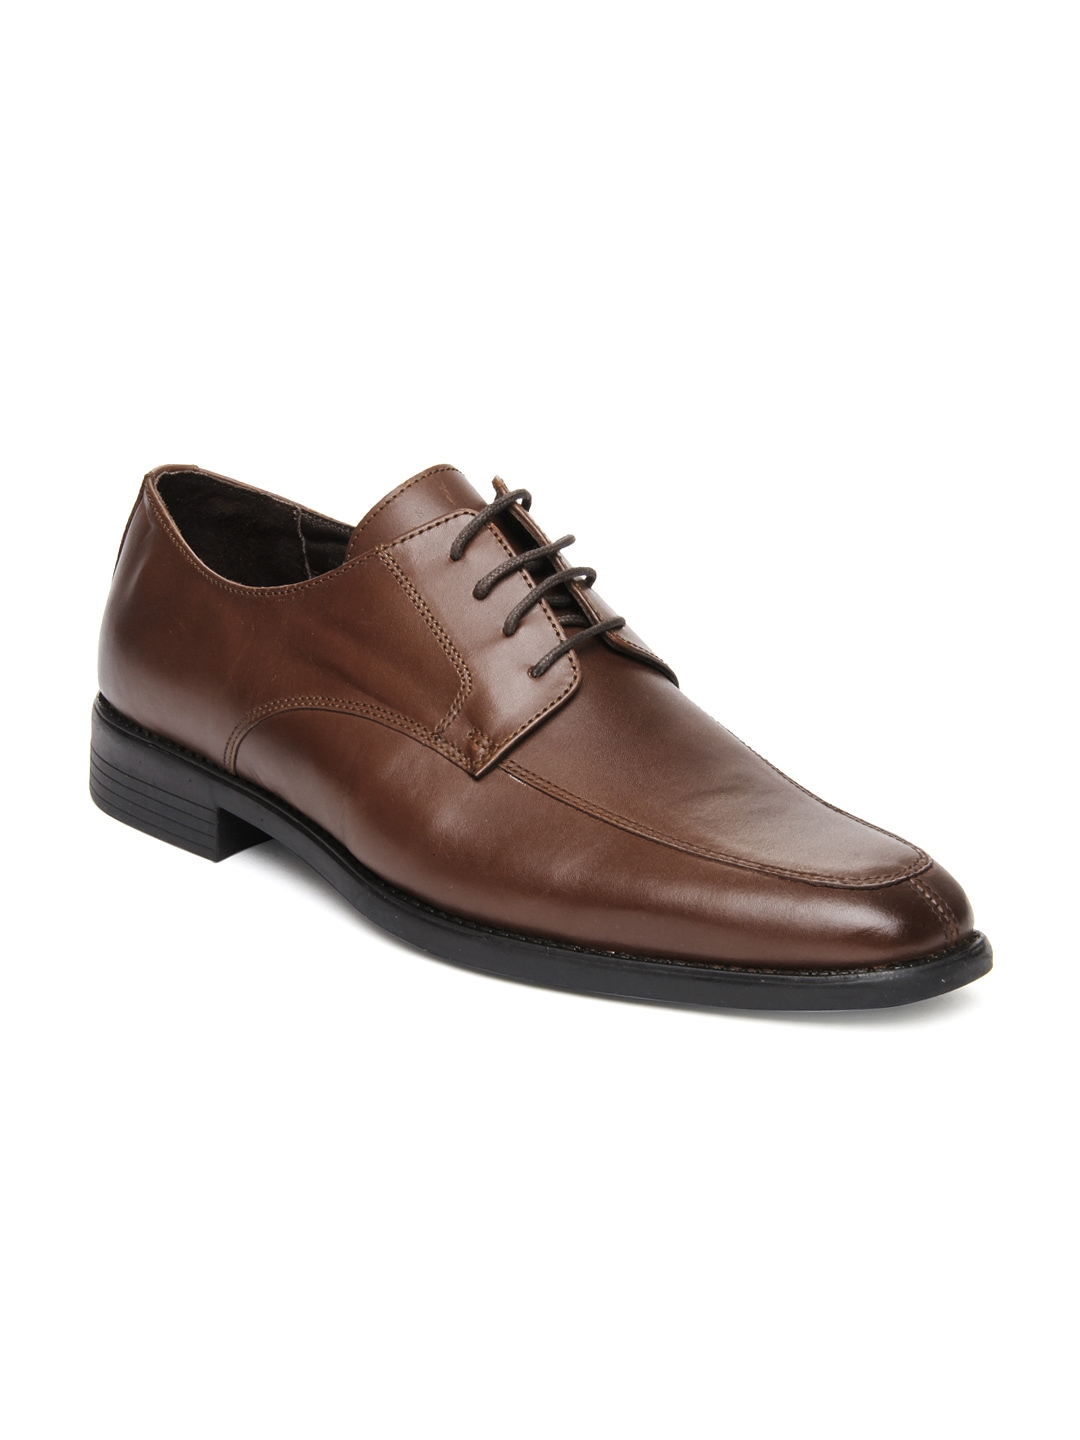 myntra heusen brown leather derby formal shoes